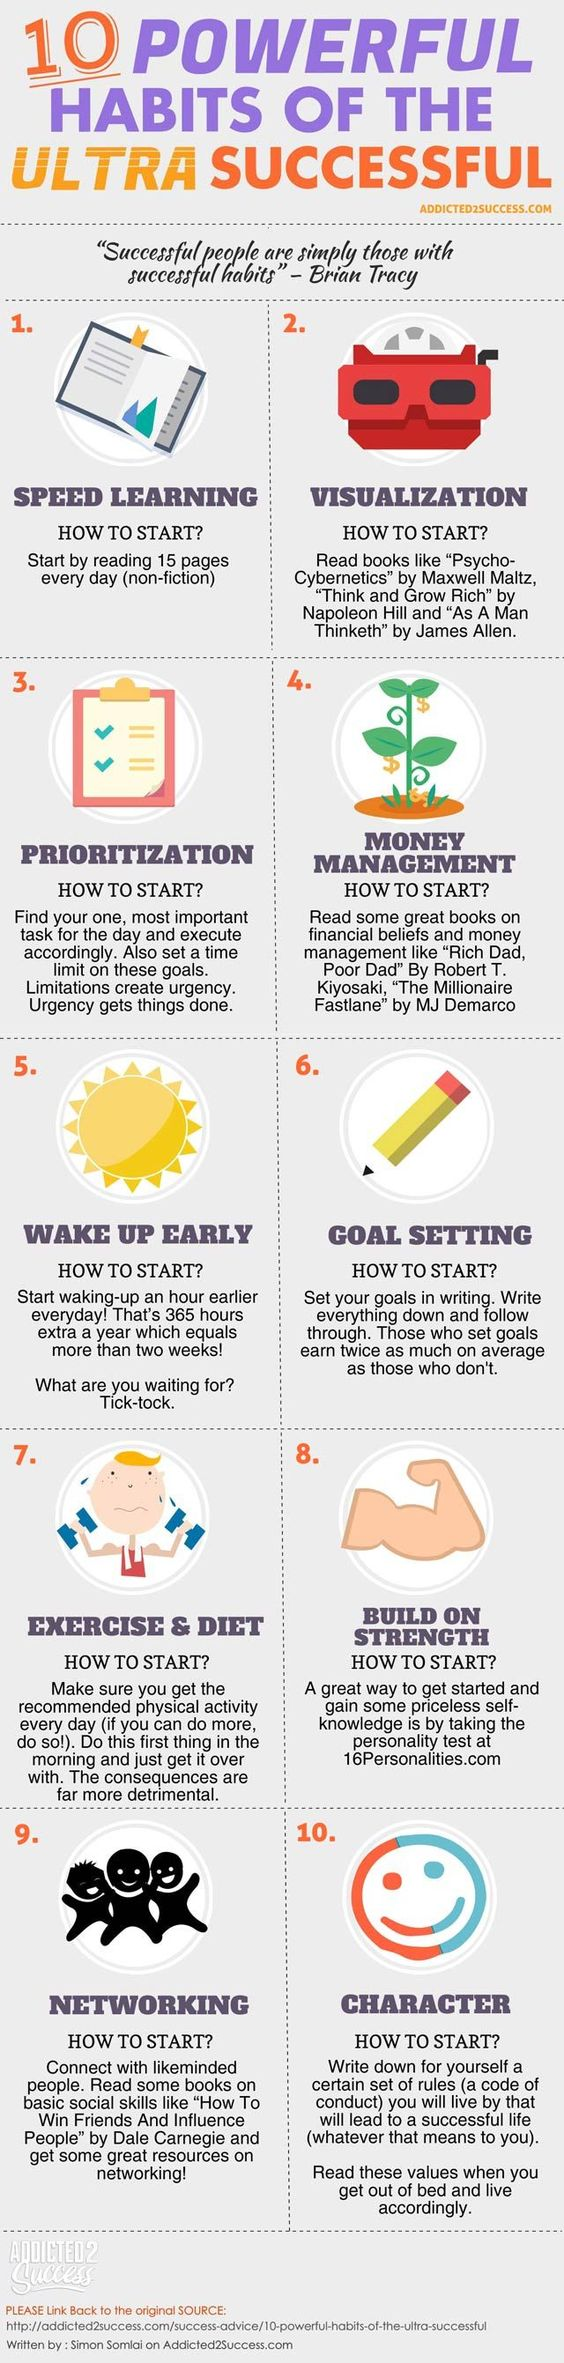 10 habits of the ultra successful